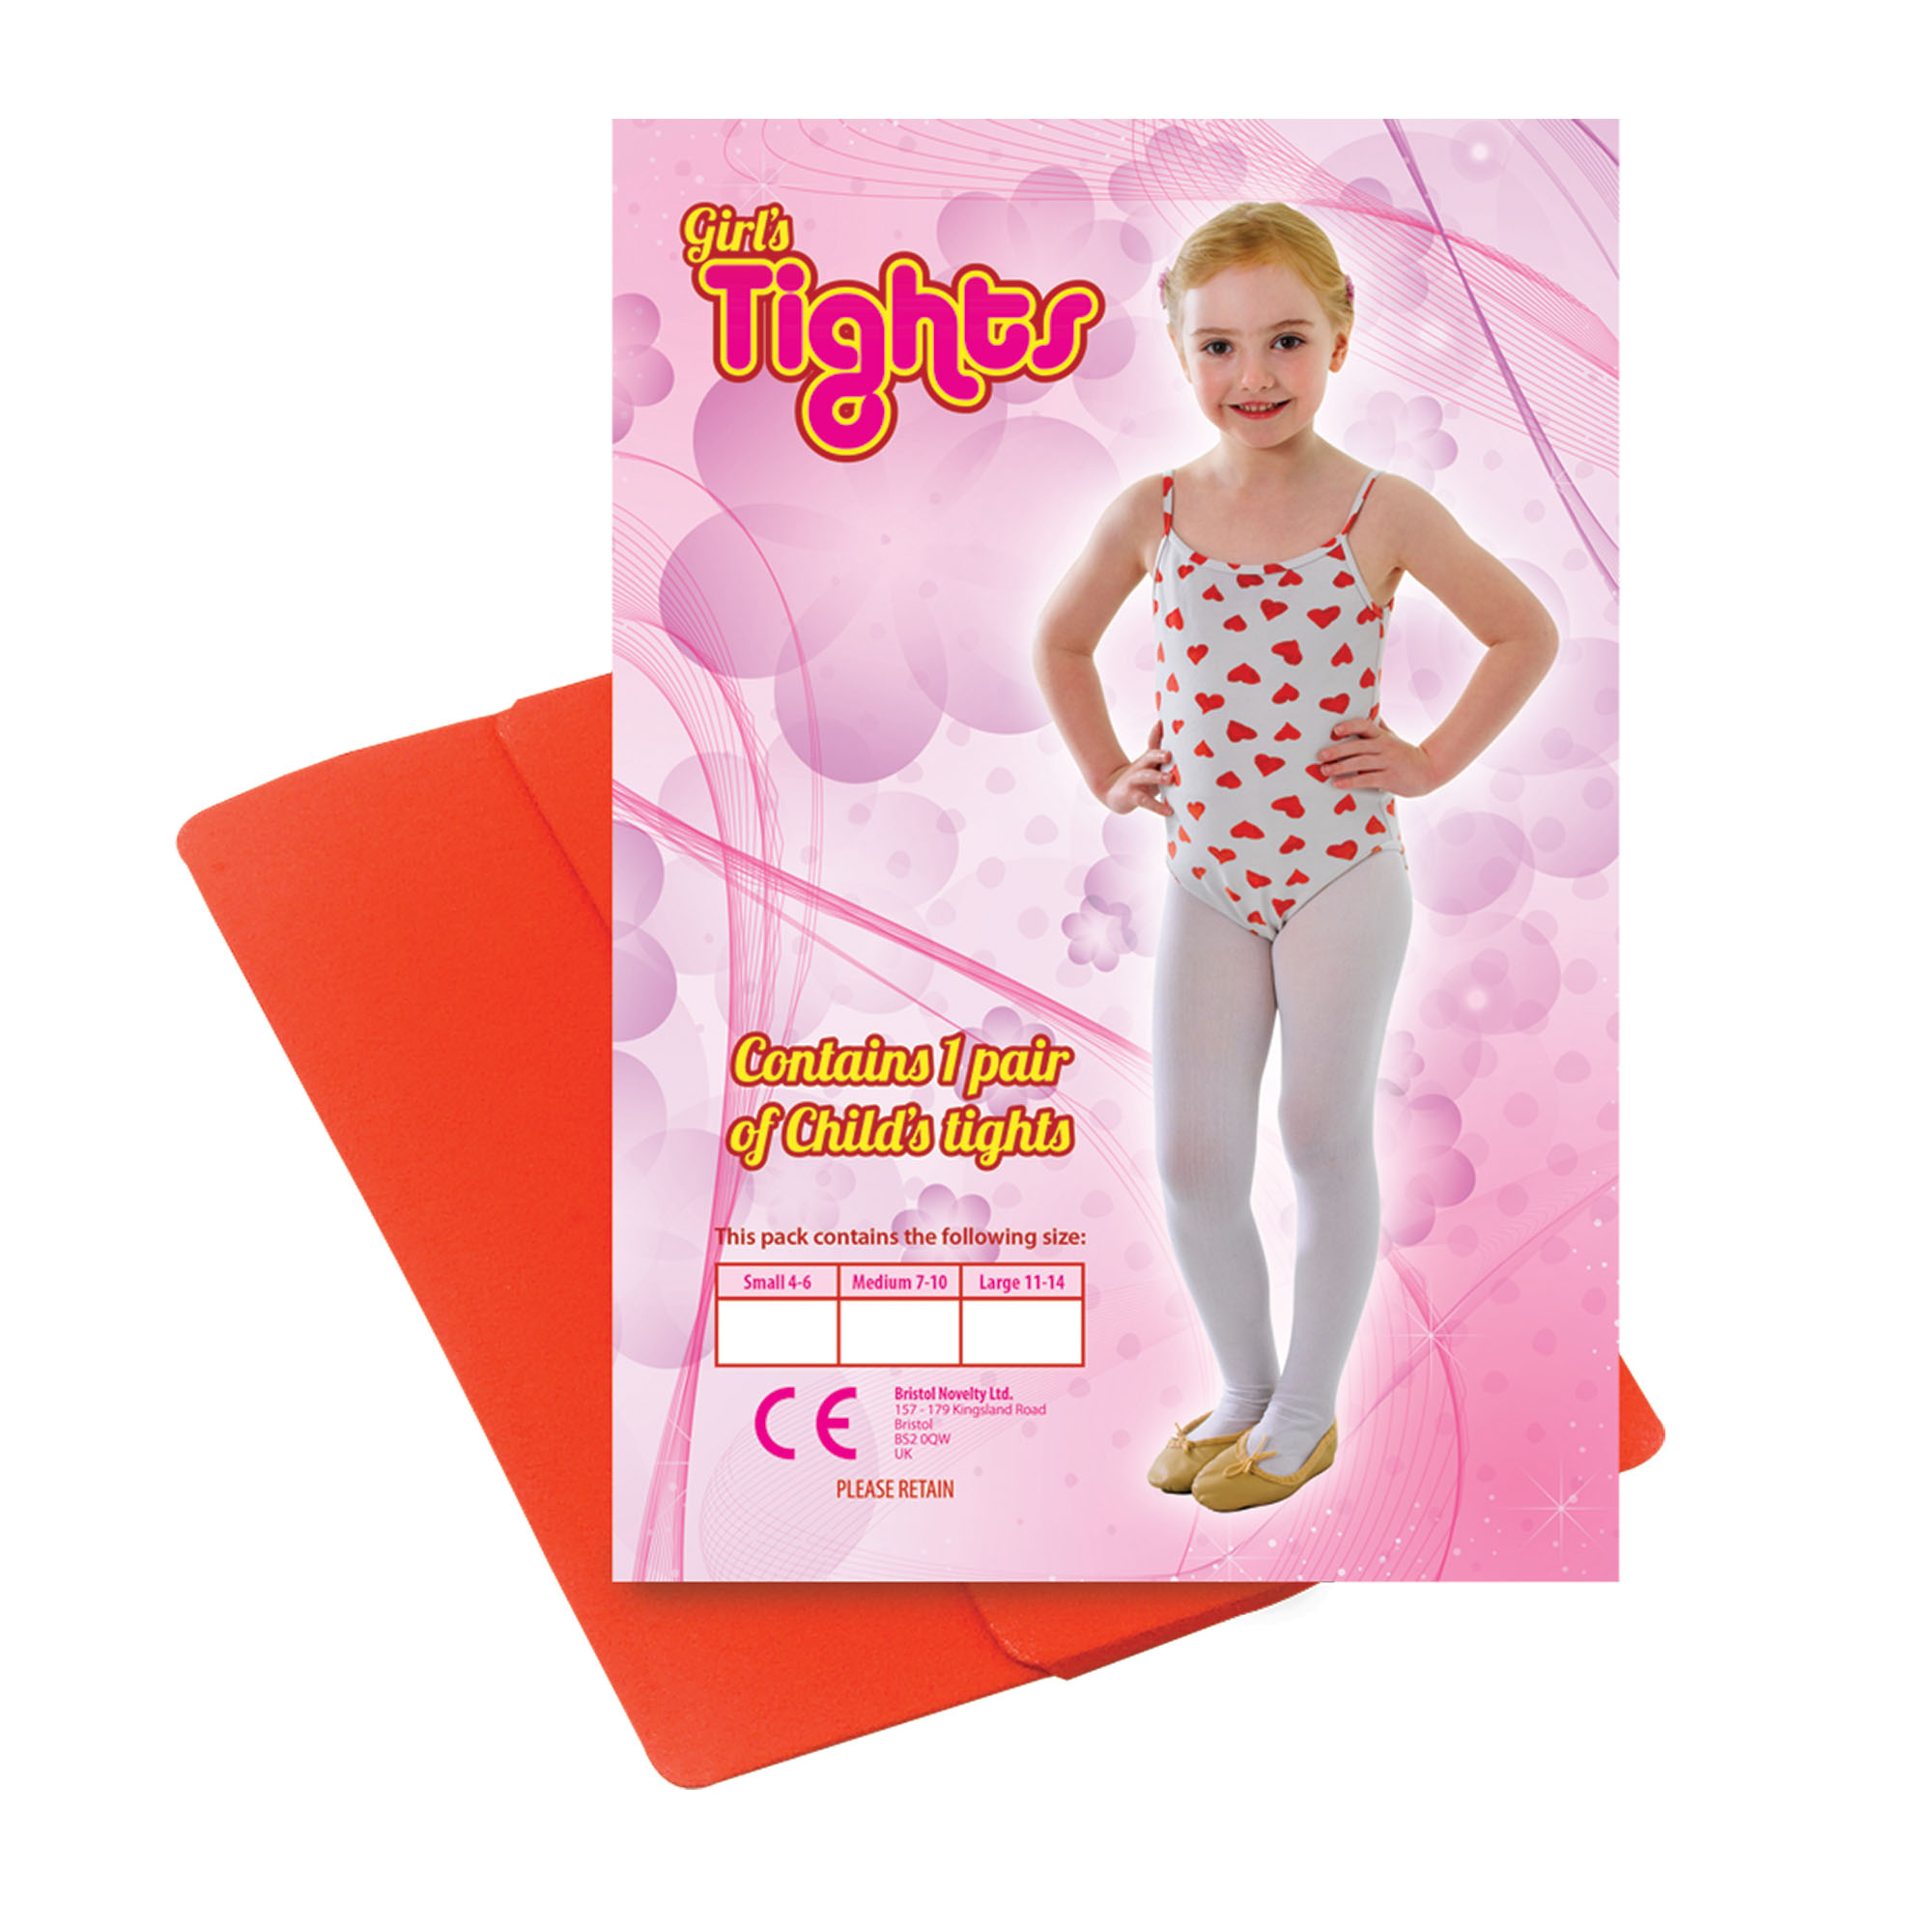 One Pair of Red Childs Tights